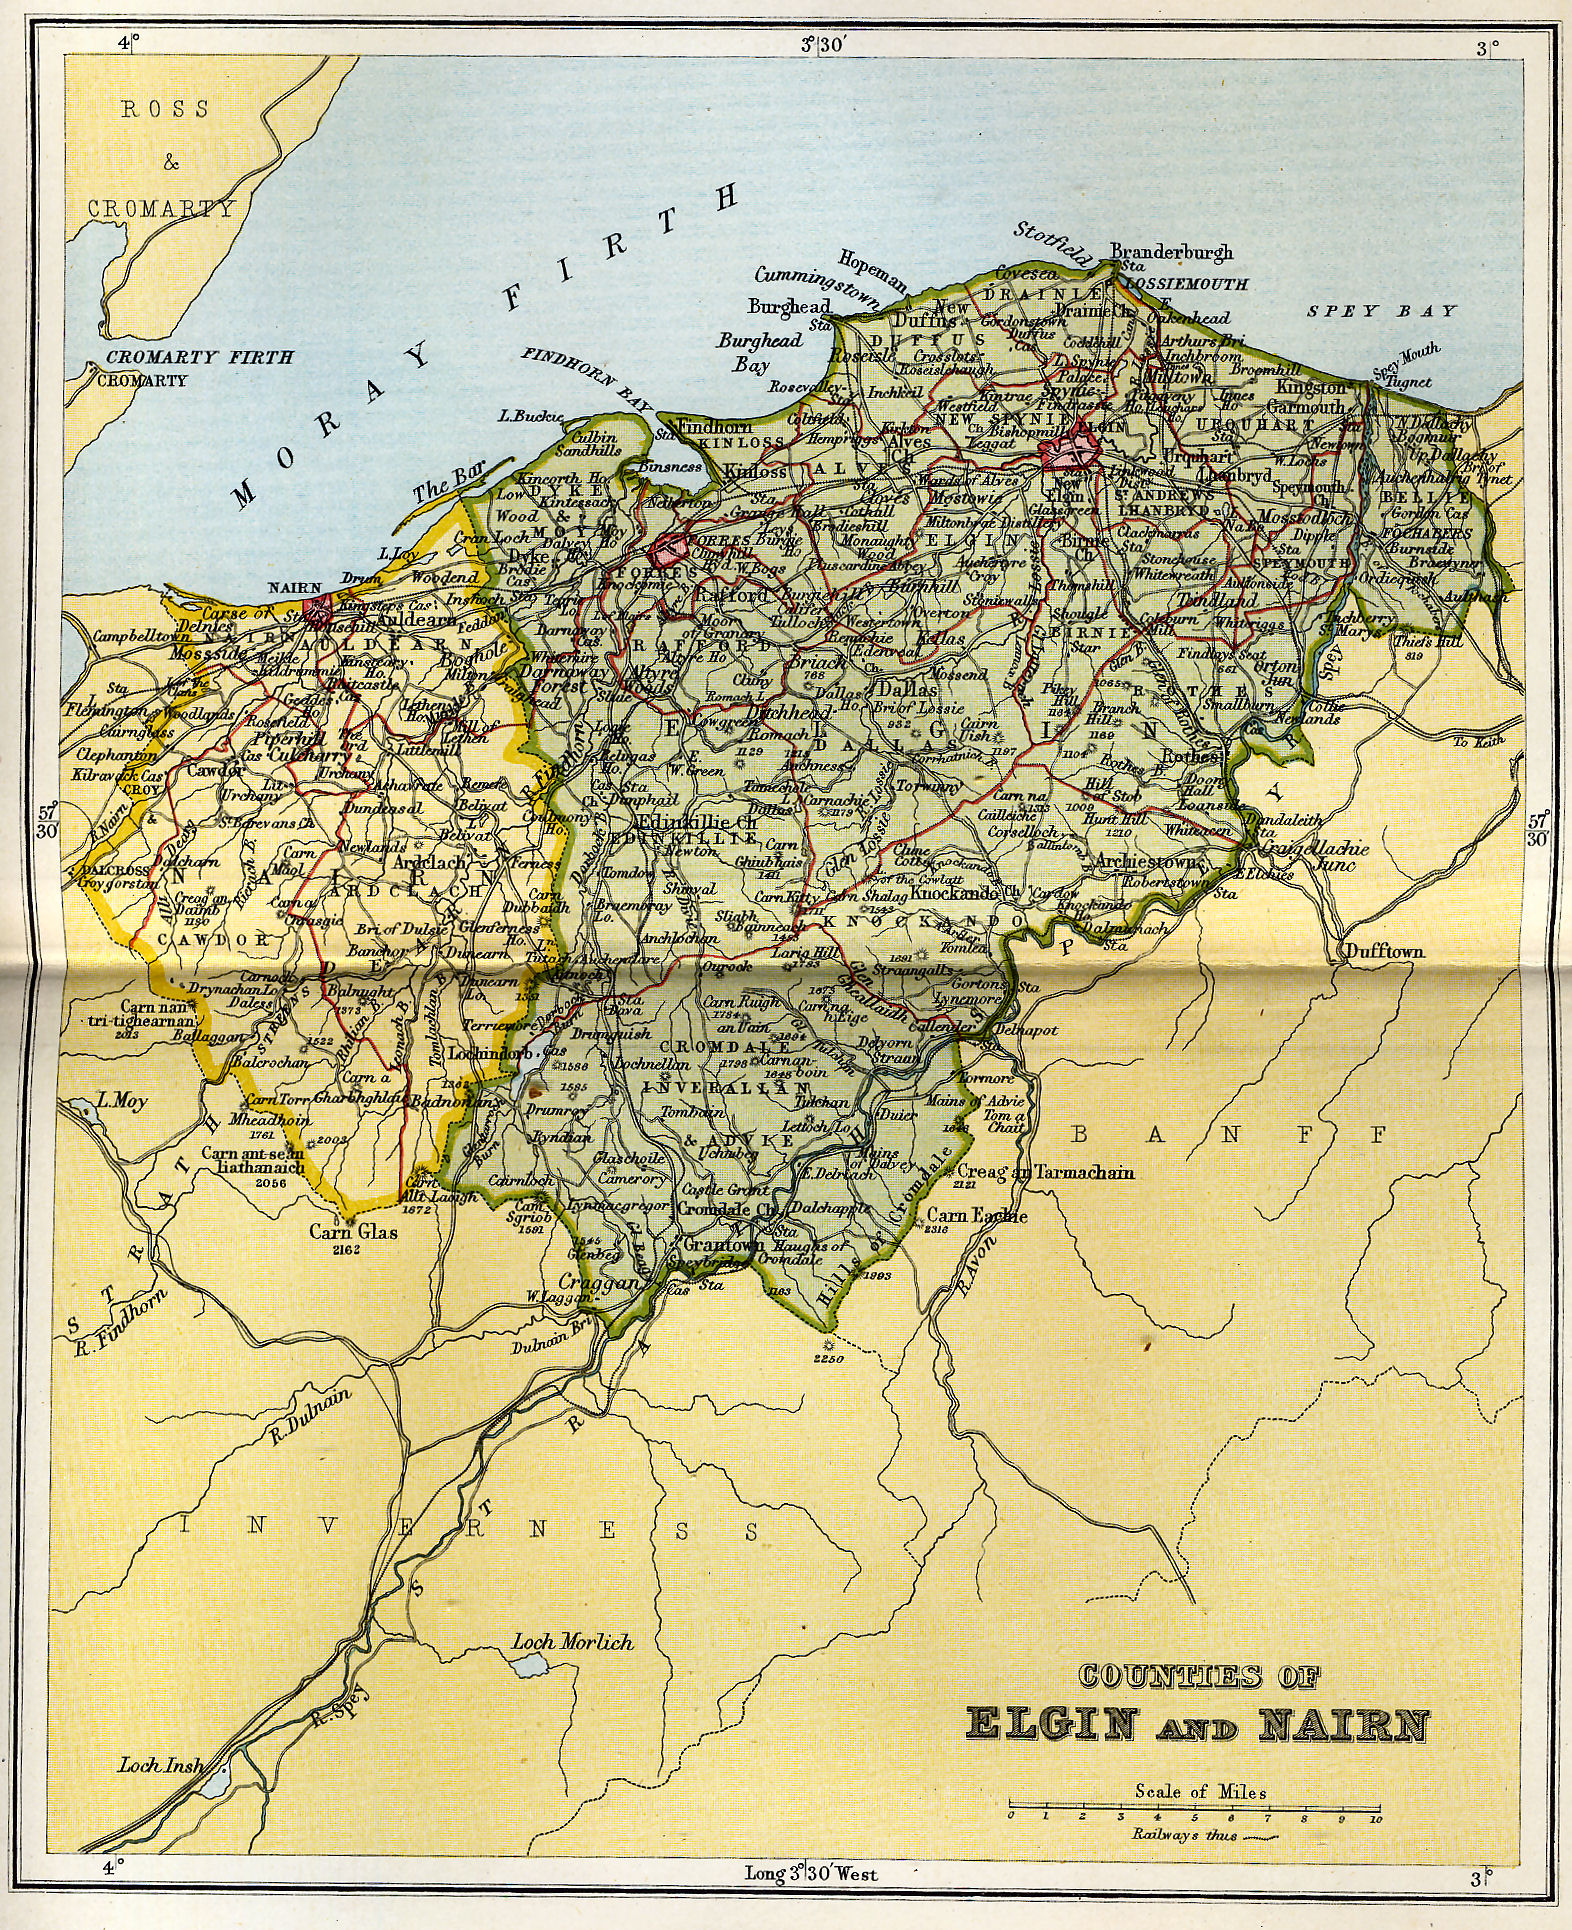 Nairn Scotland Map.Counties Of Elgin And Nairn Map